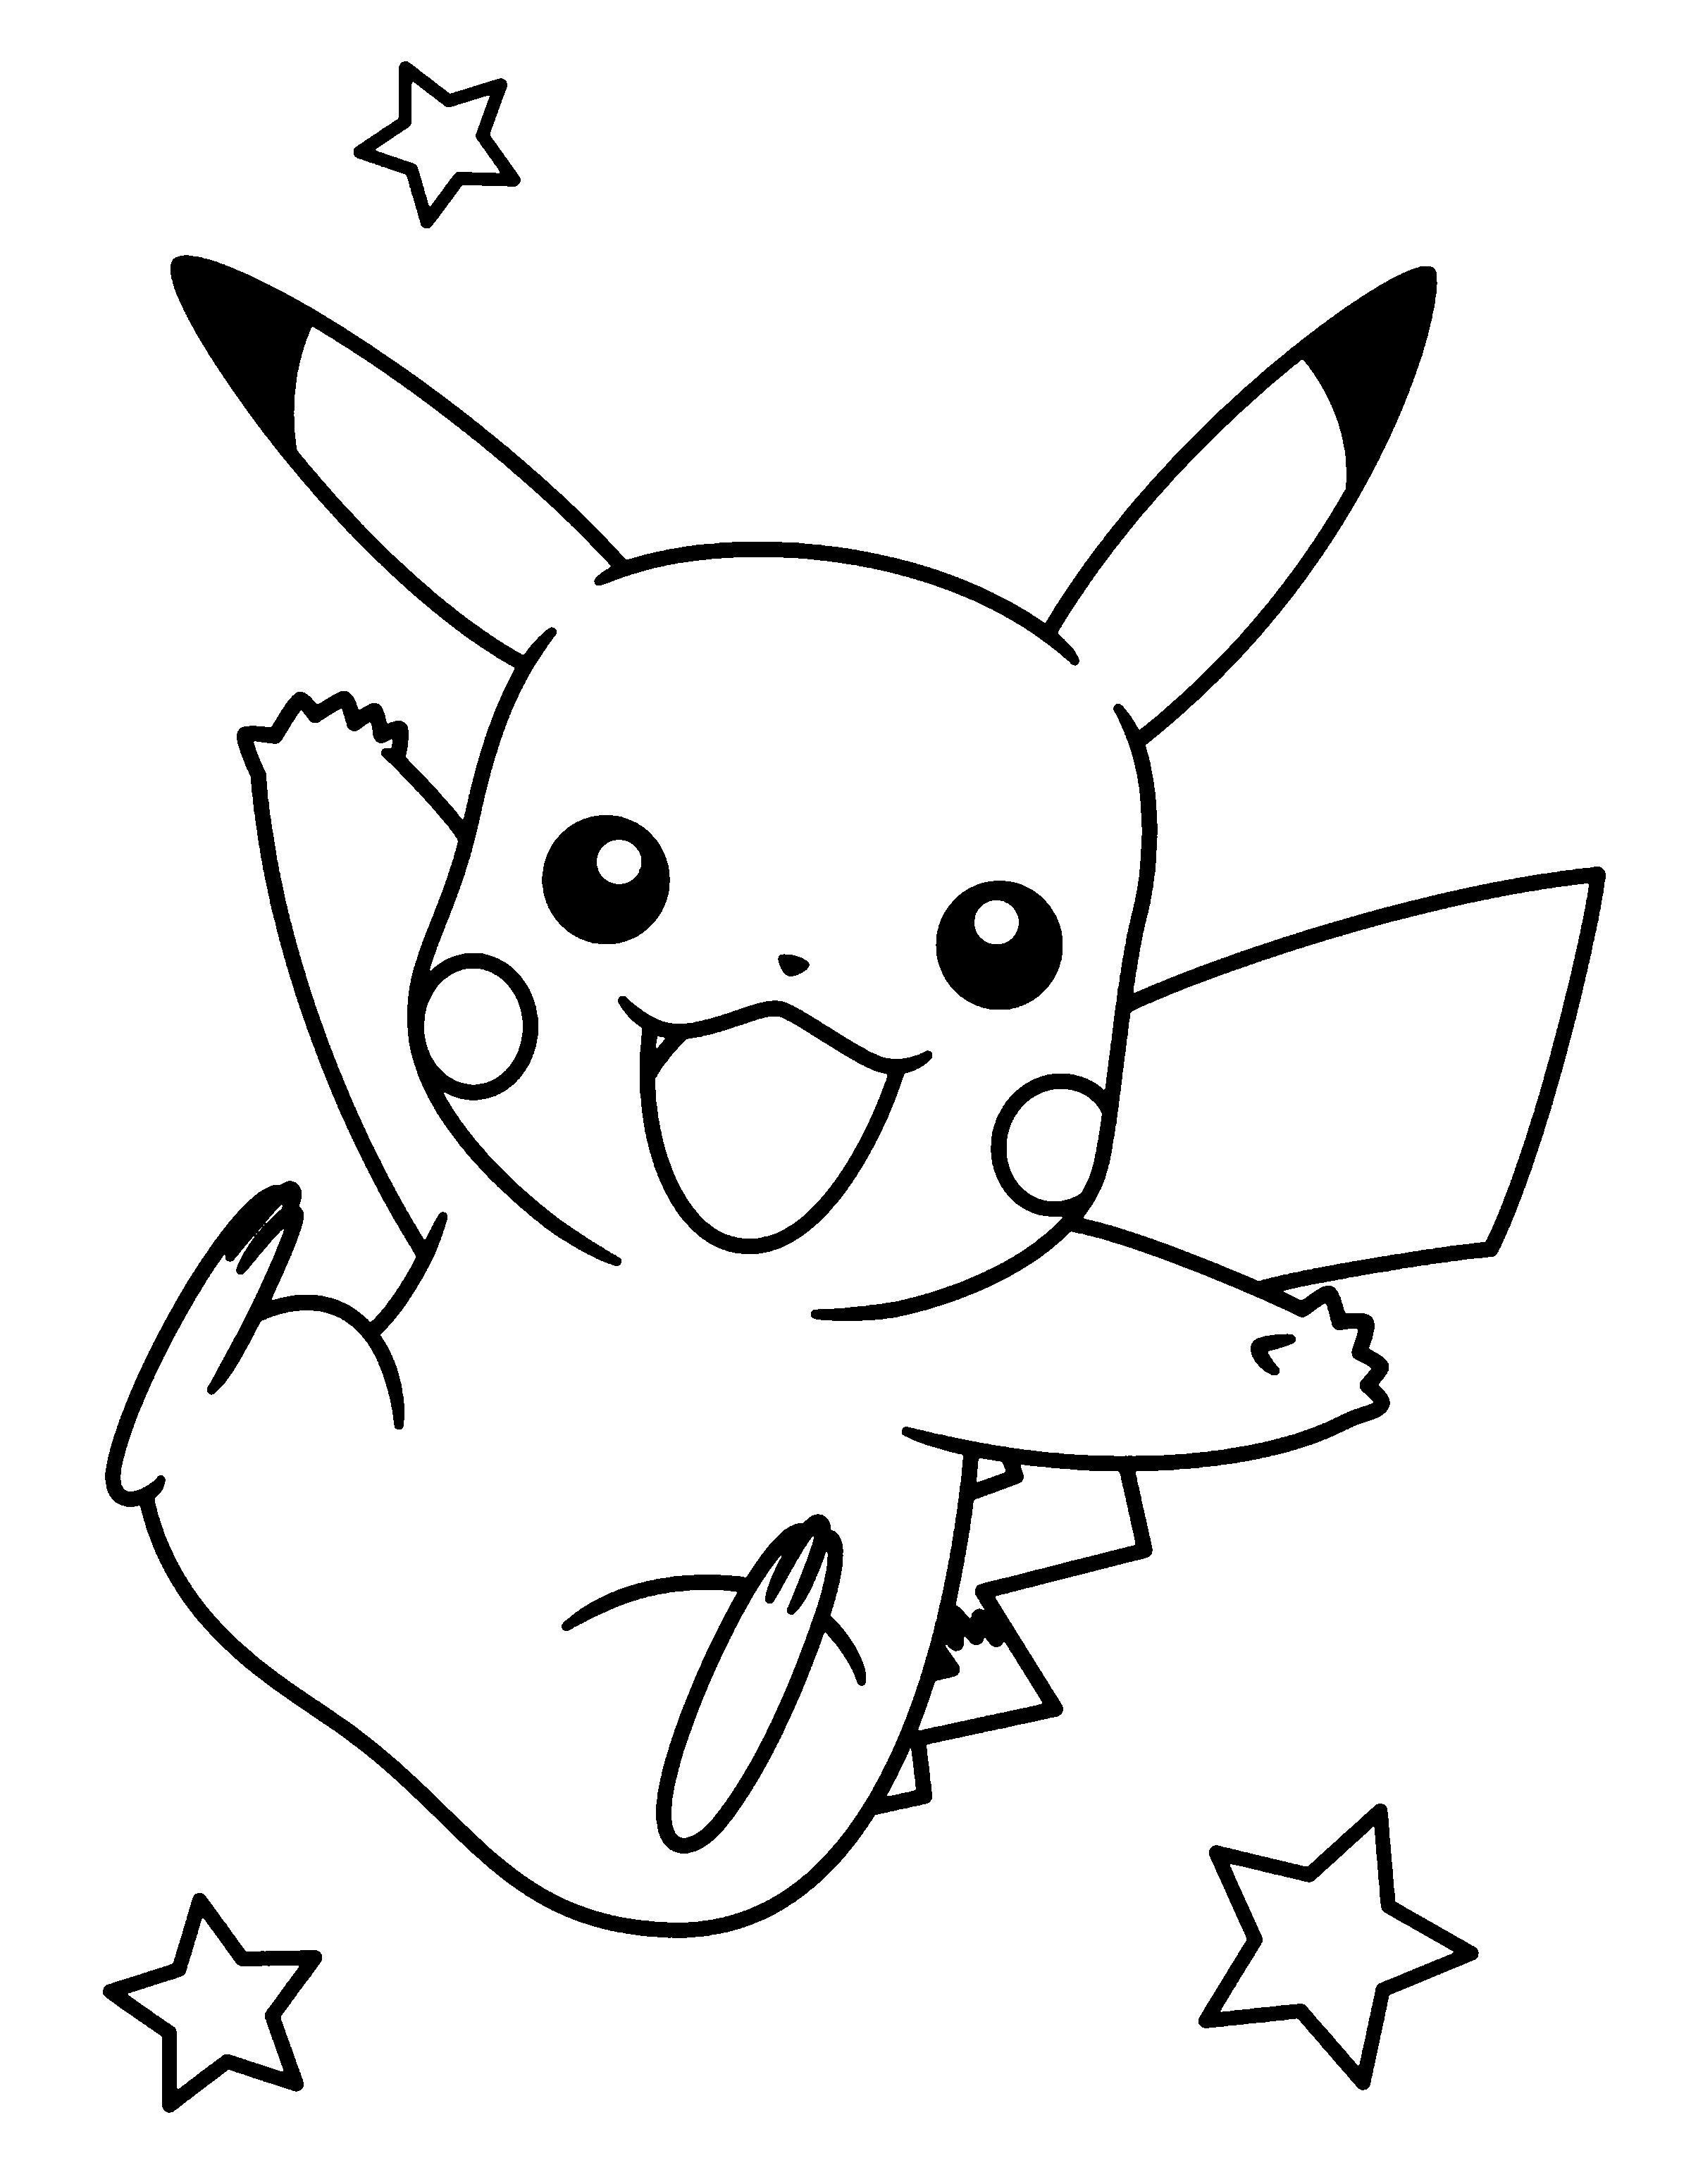 Pikachu Rockstar Coloring Pages Through the thousands of